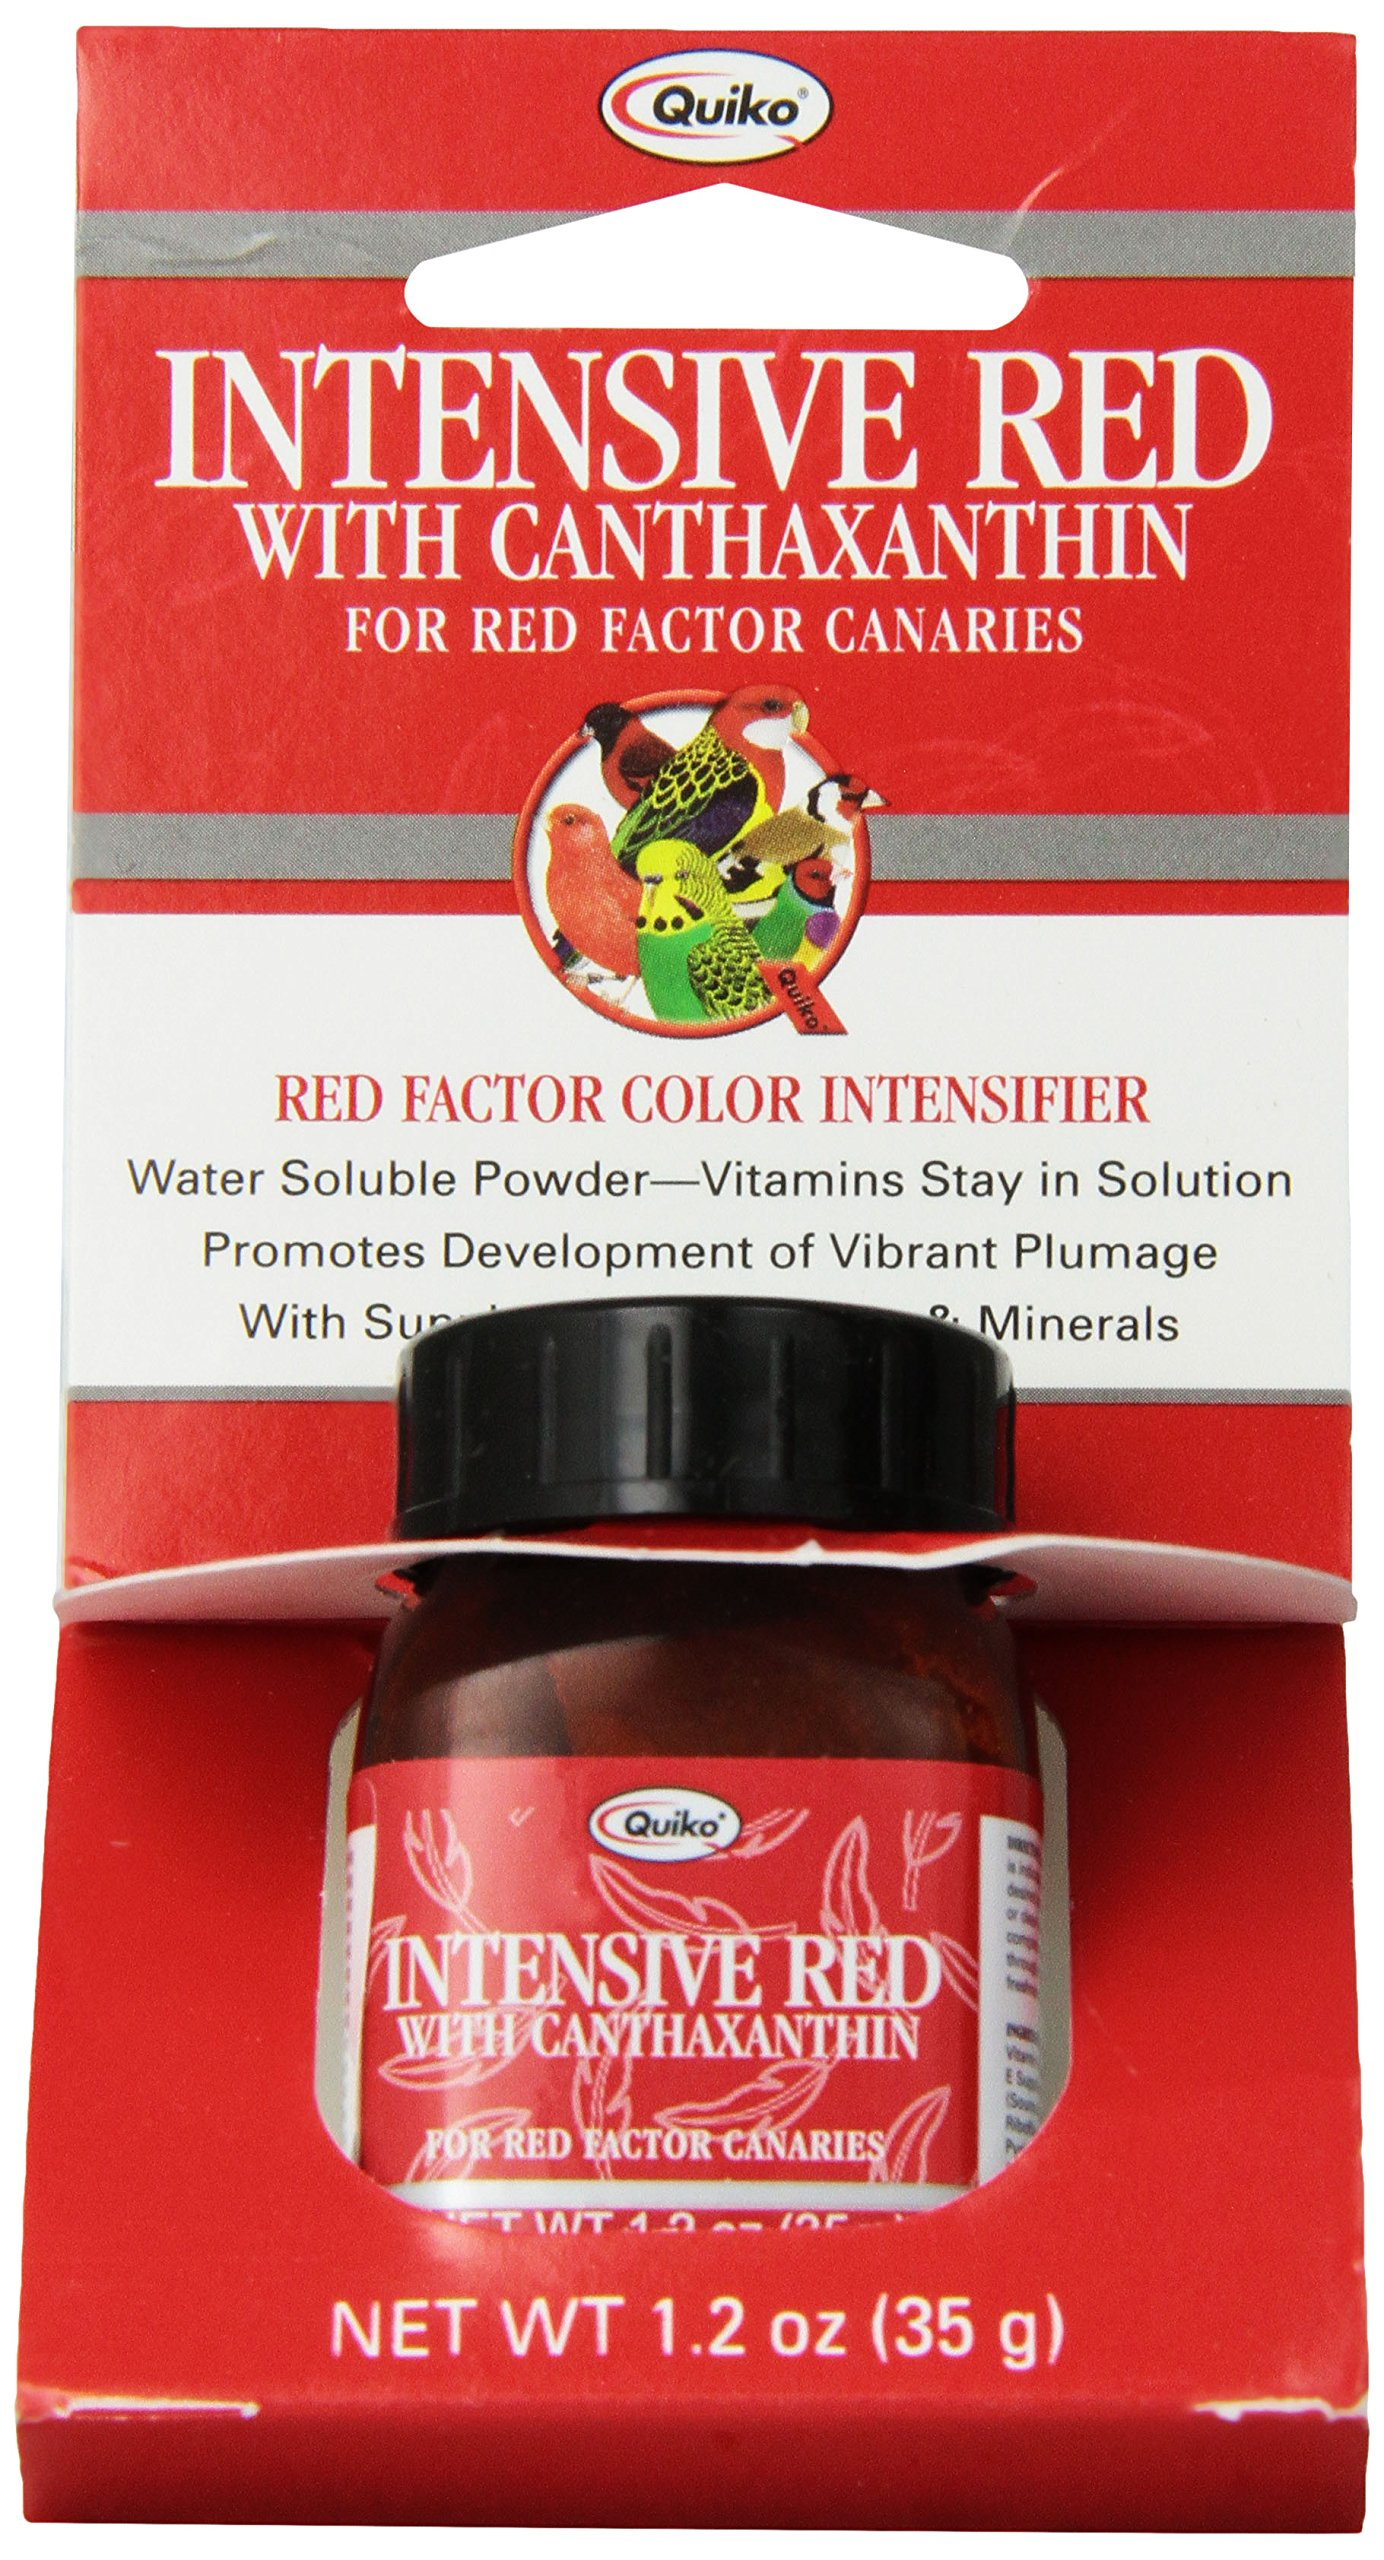 Quiko Intensive Red with Canthaxanthin for Red-Factor Canaries, Vitamin & Mineral Supplement, Red-Factor Color Intensifier, 1.2 Ounce by Quiko